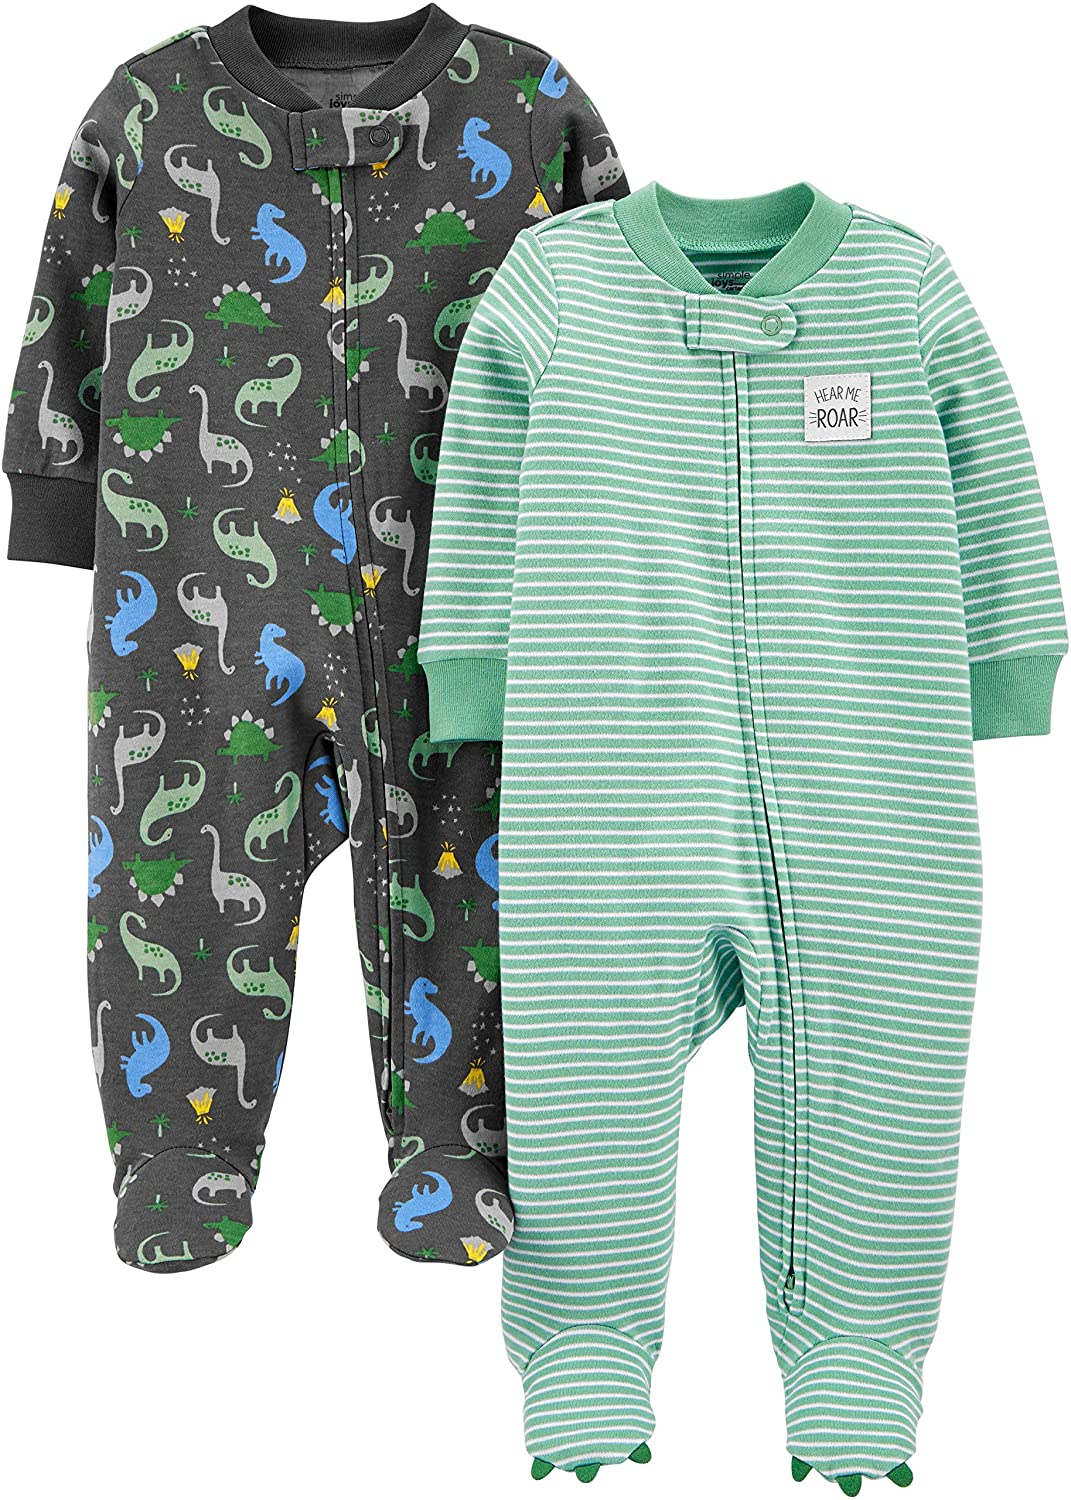 Simple Joys by Carter's Baby Boys' 2-Pack Cotton Footed Sleep and Play: Clothing